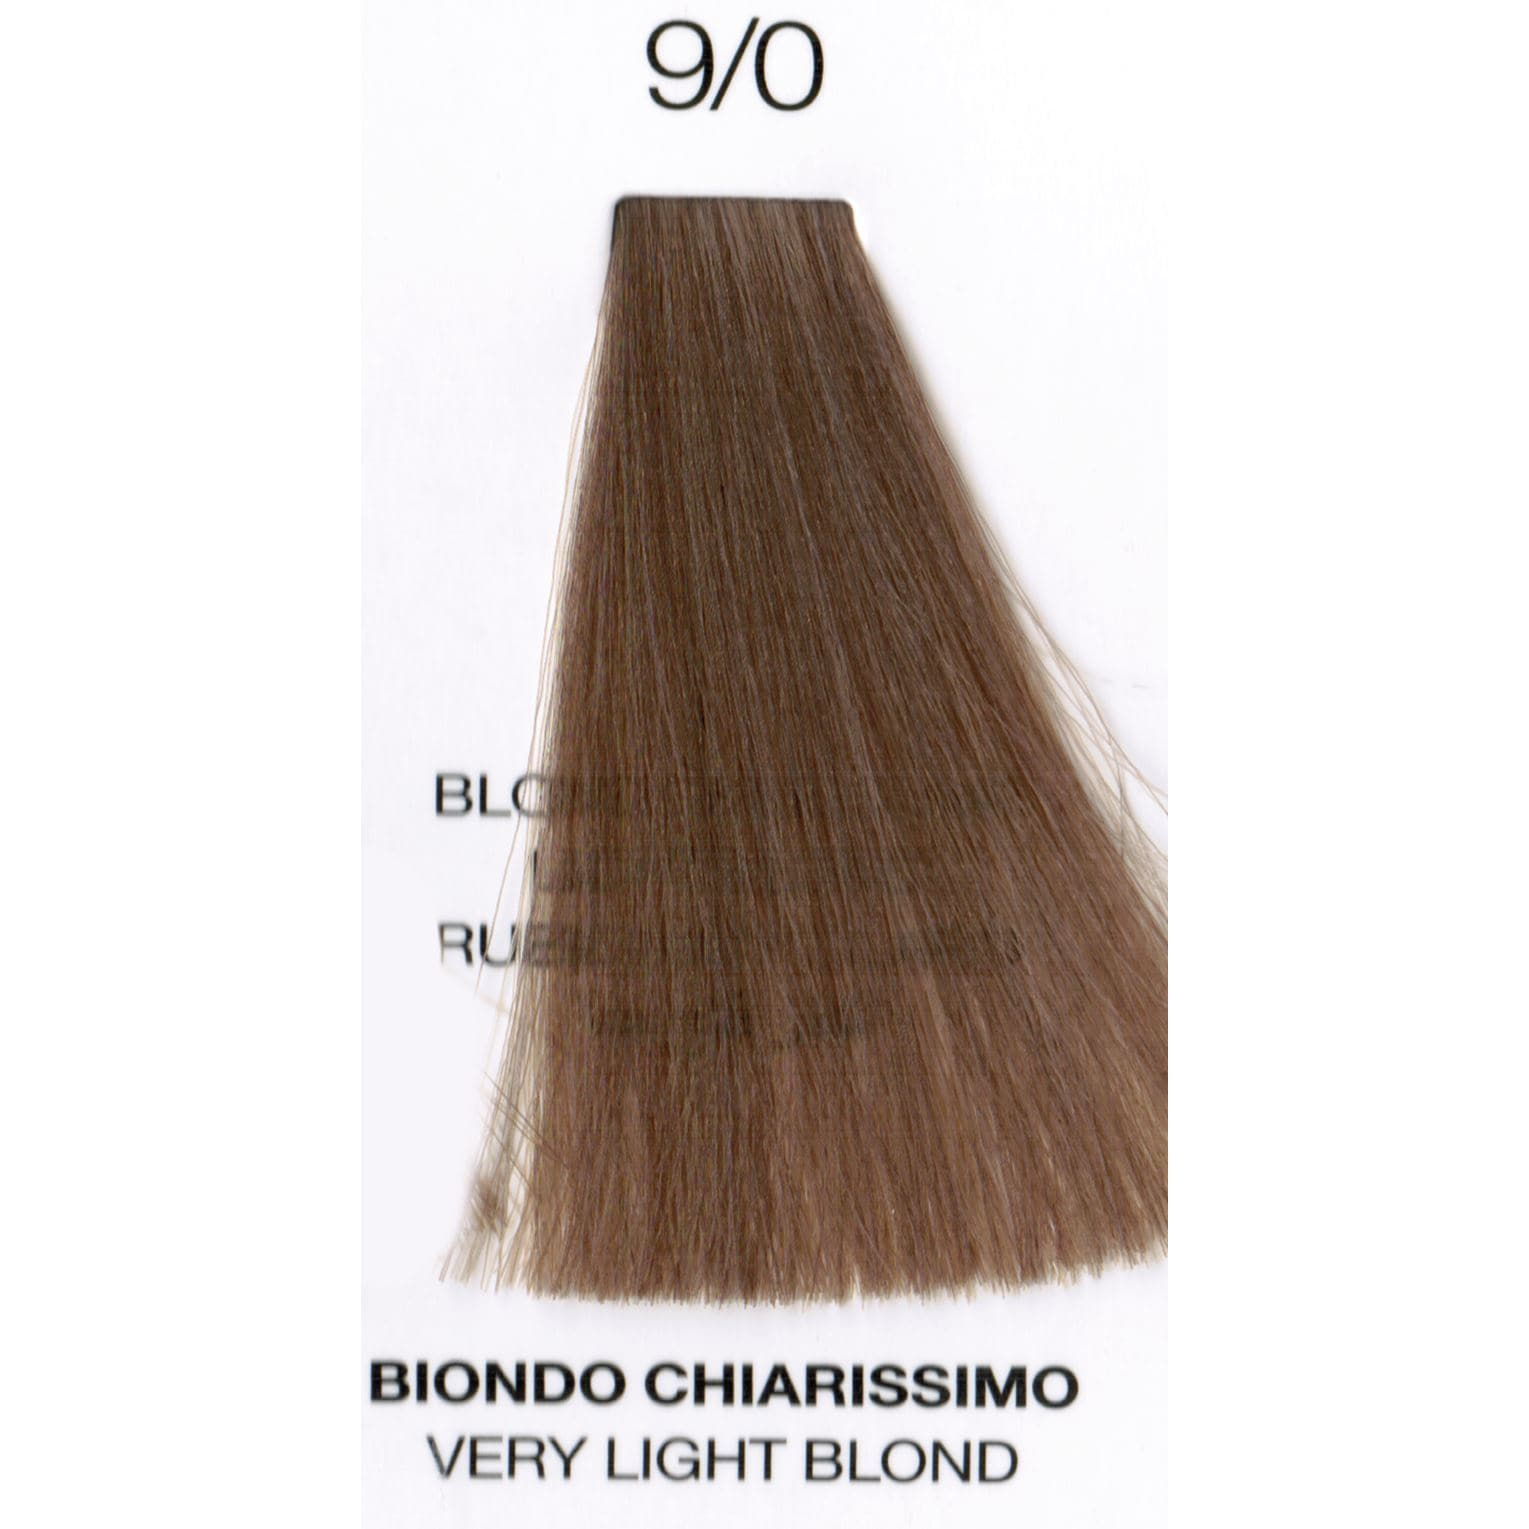 9/0 Very Light Blonde | Purity | Ammonia-Free Permanent Hair Color | OYSTER | SHSalons.com